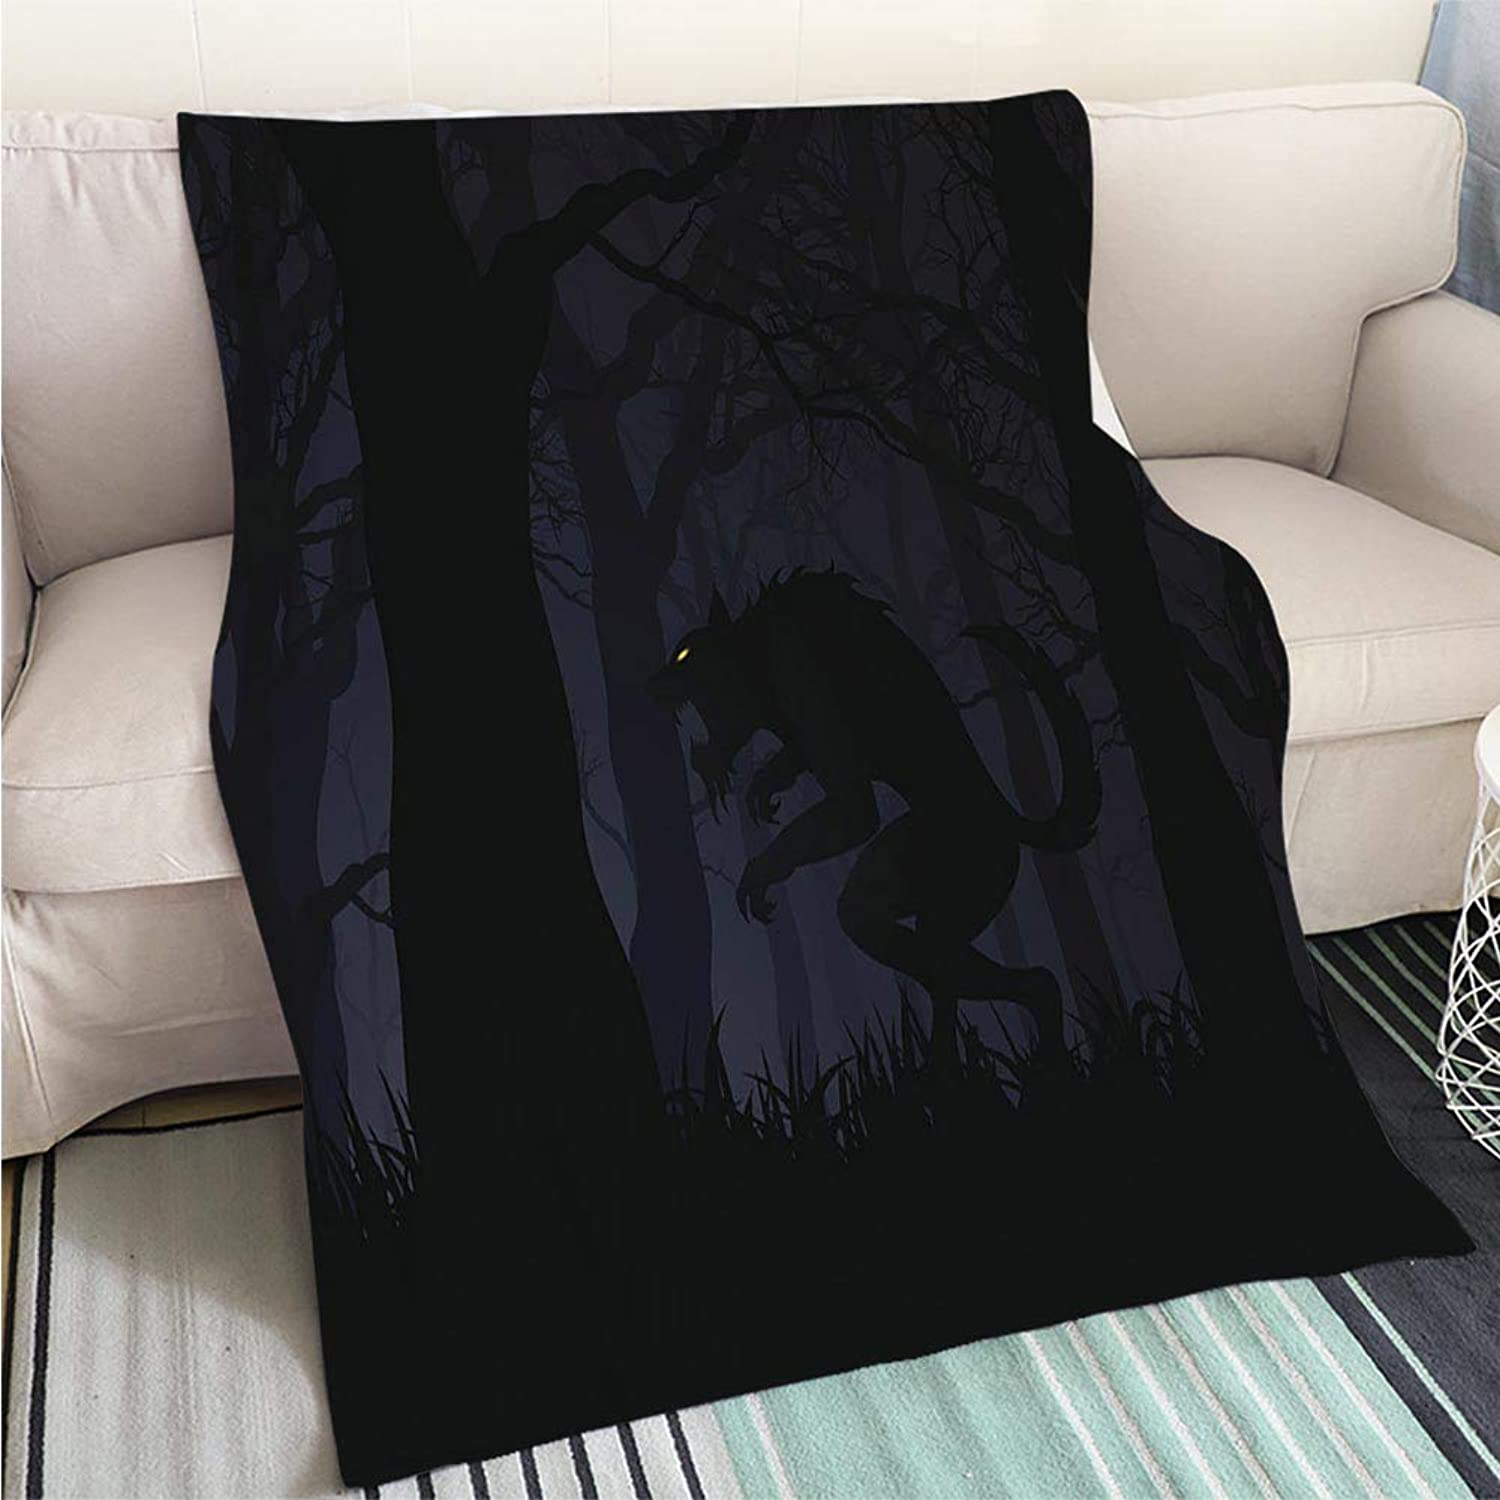 Breathable Flannel Warm Weighted Blanket Dark Digital Illustration of a Werewolf in a Forest Perfect for Couch Sofa or Bed Cool Quilt